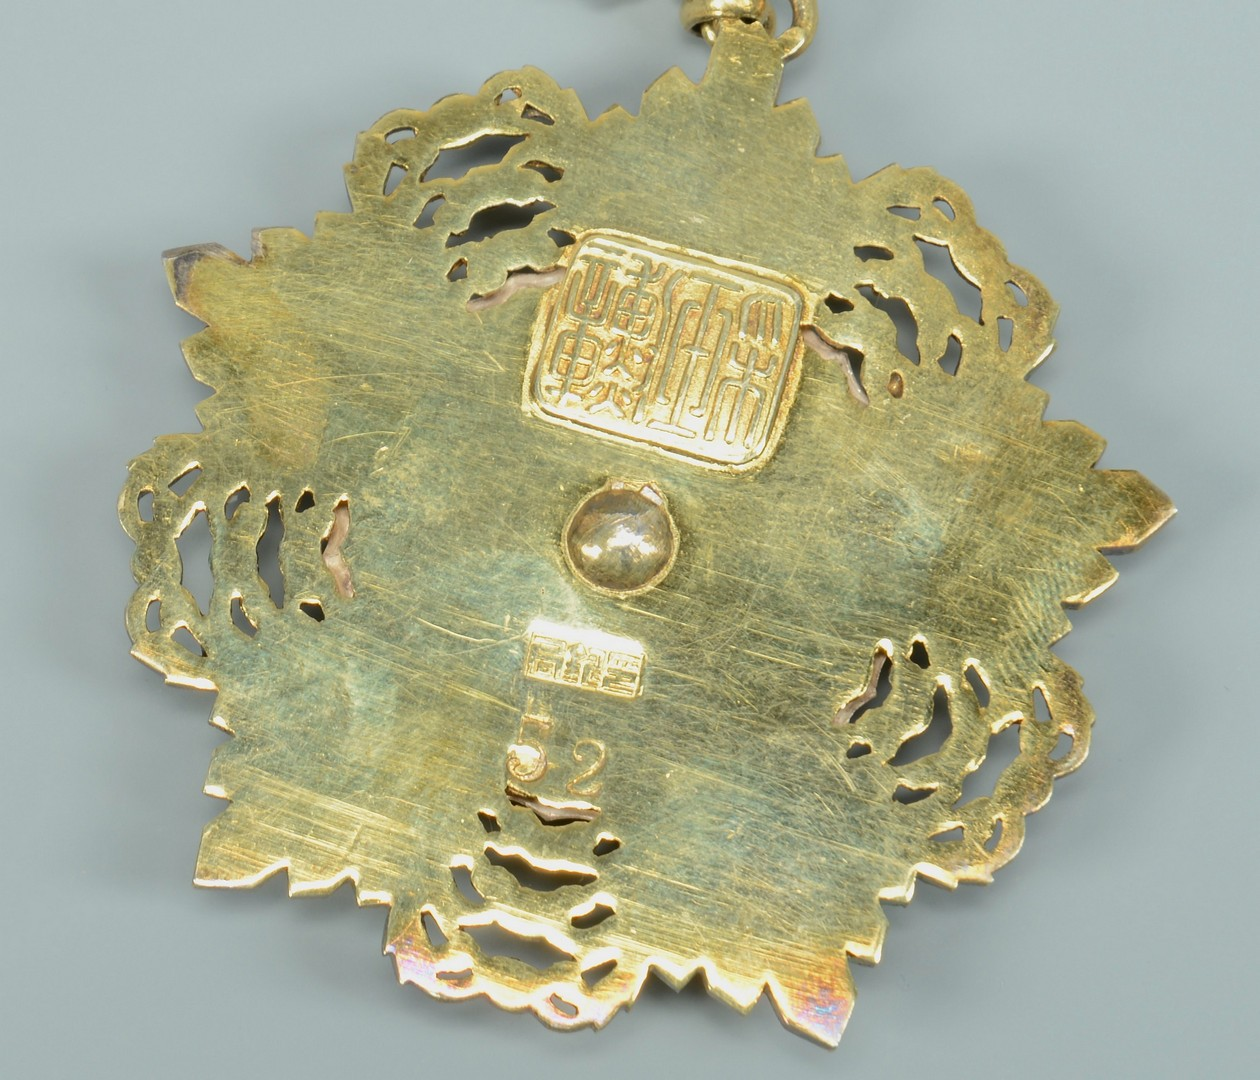 Lot 3383246: 5 Chinese Jewelry Items